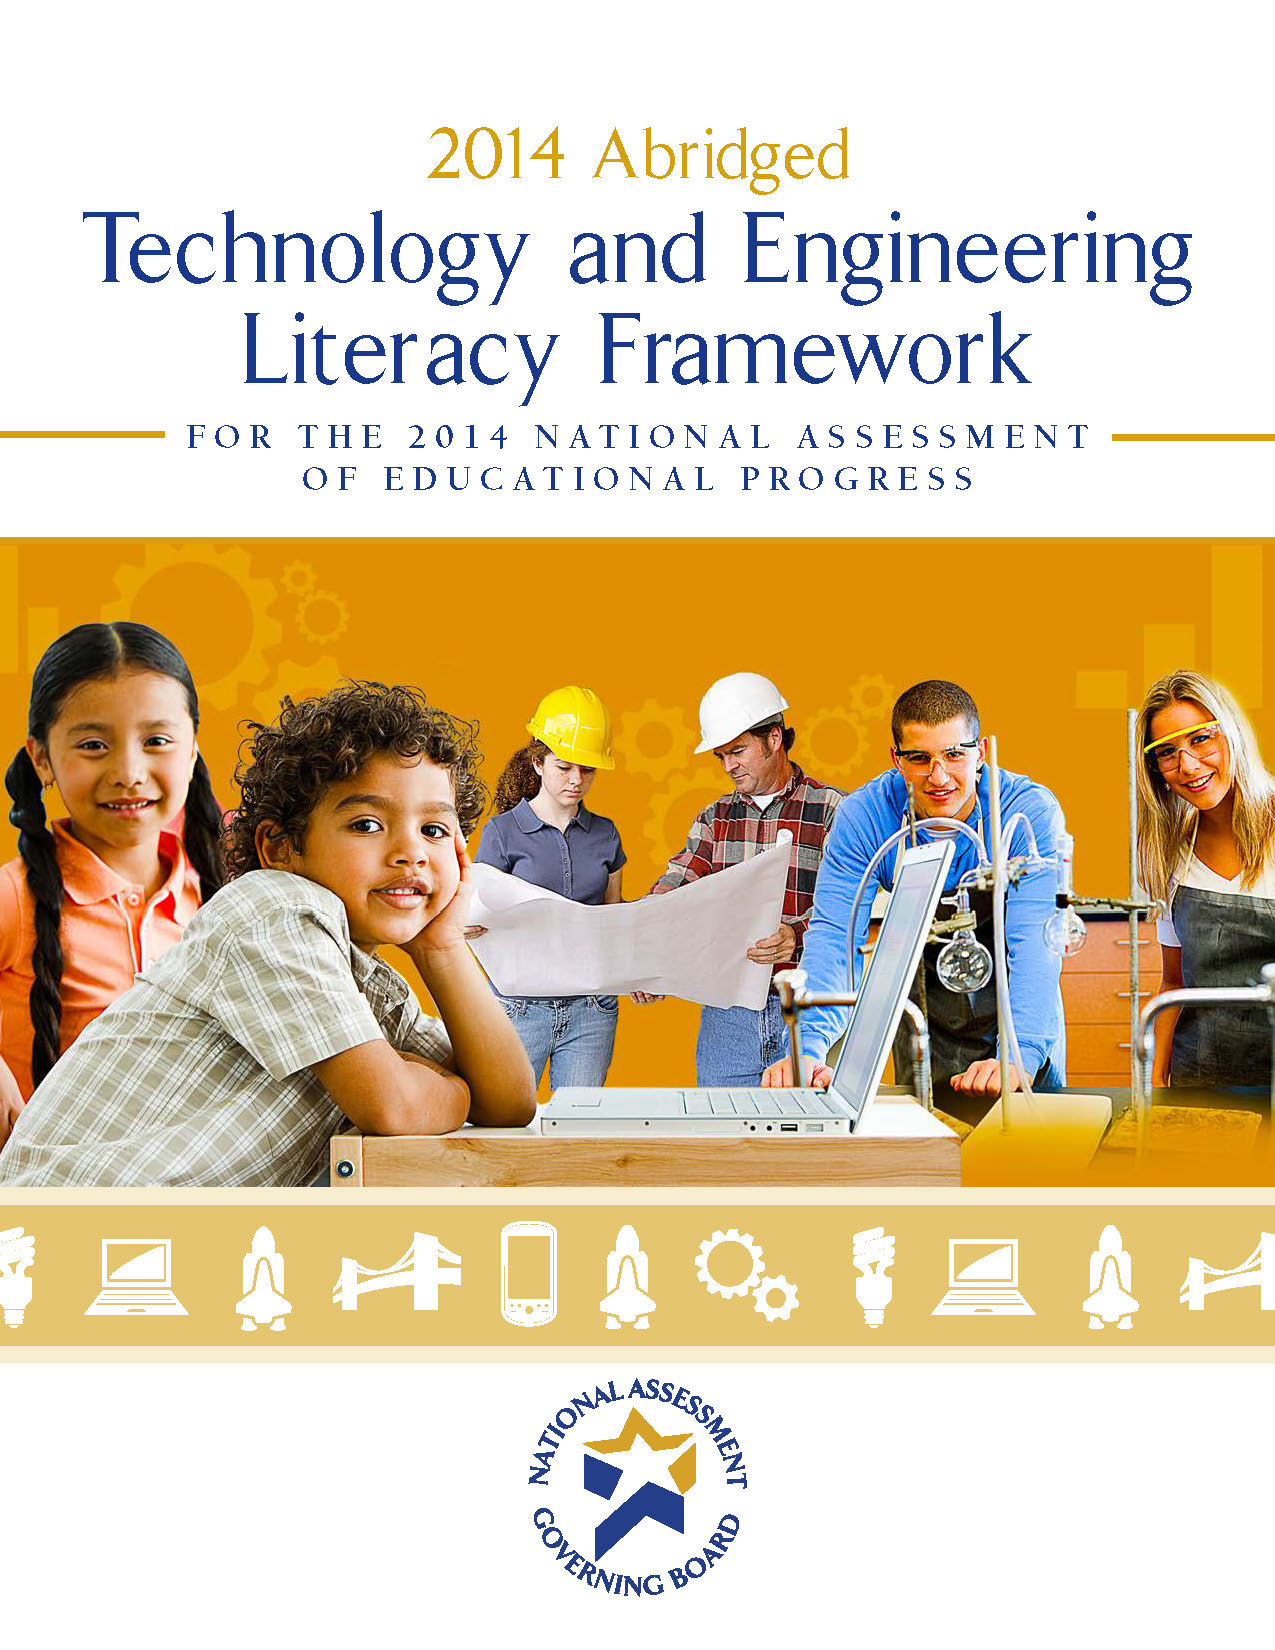 2014 Technology and Engineering Literacy Framework